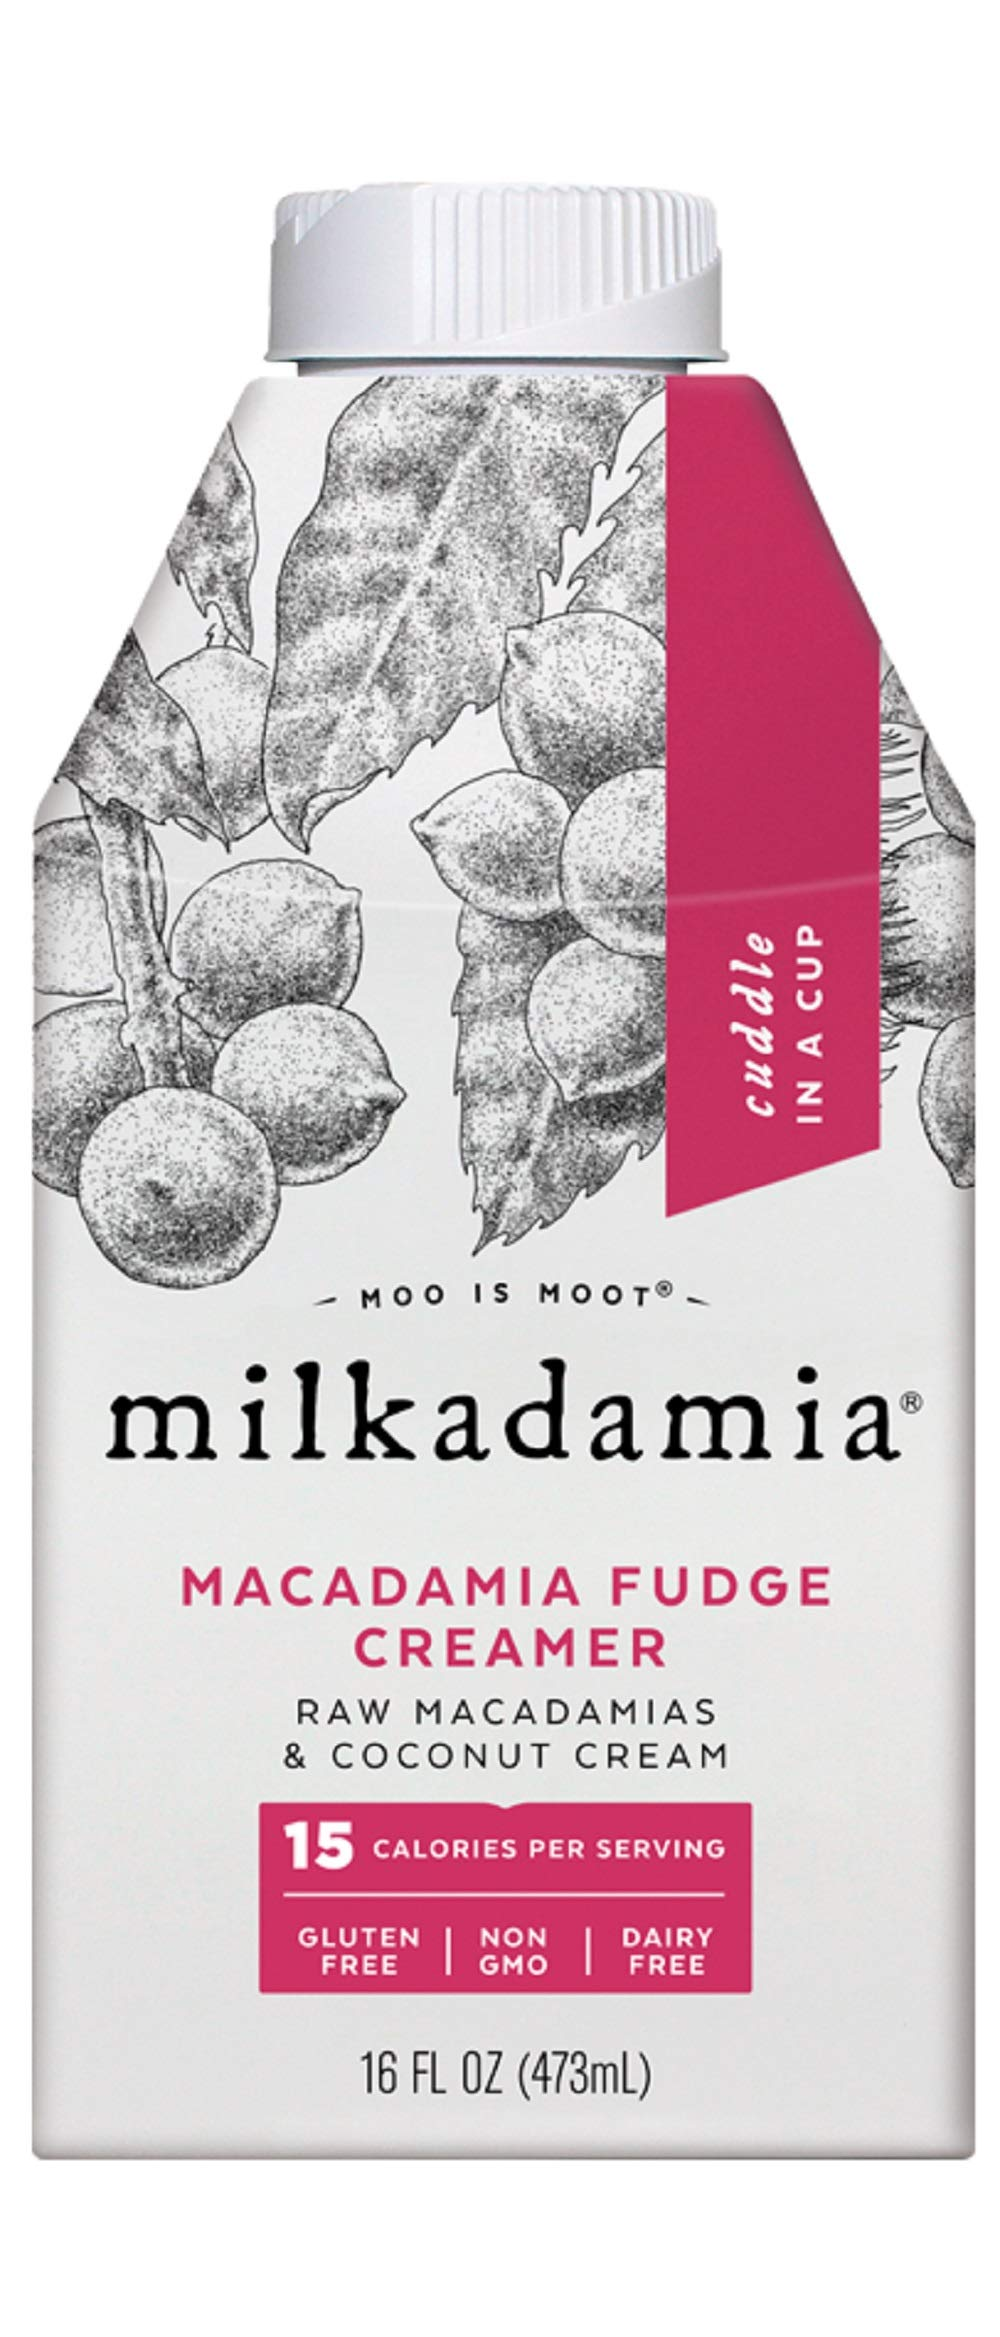 Milkdamia Macadamia Fudge Creamer With Raw Macadamias & Coconut Cream,, 16 Fl Oz (pack Of 6) by Milkdamia